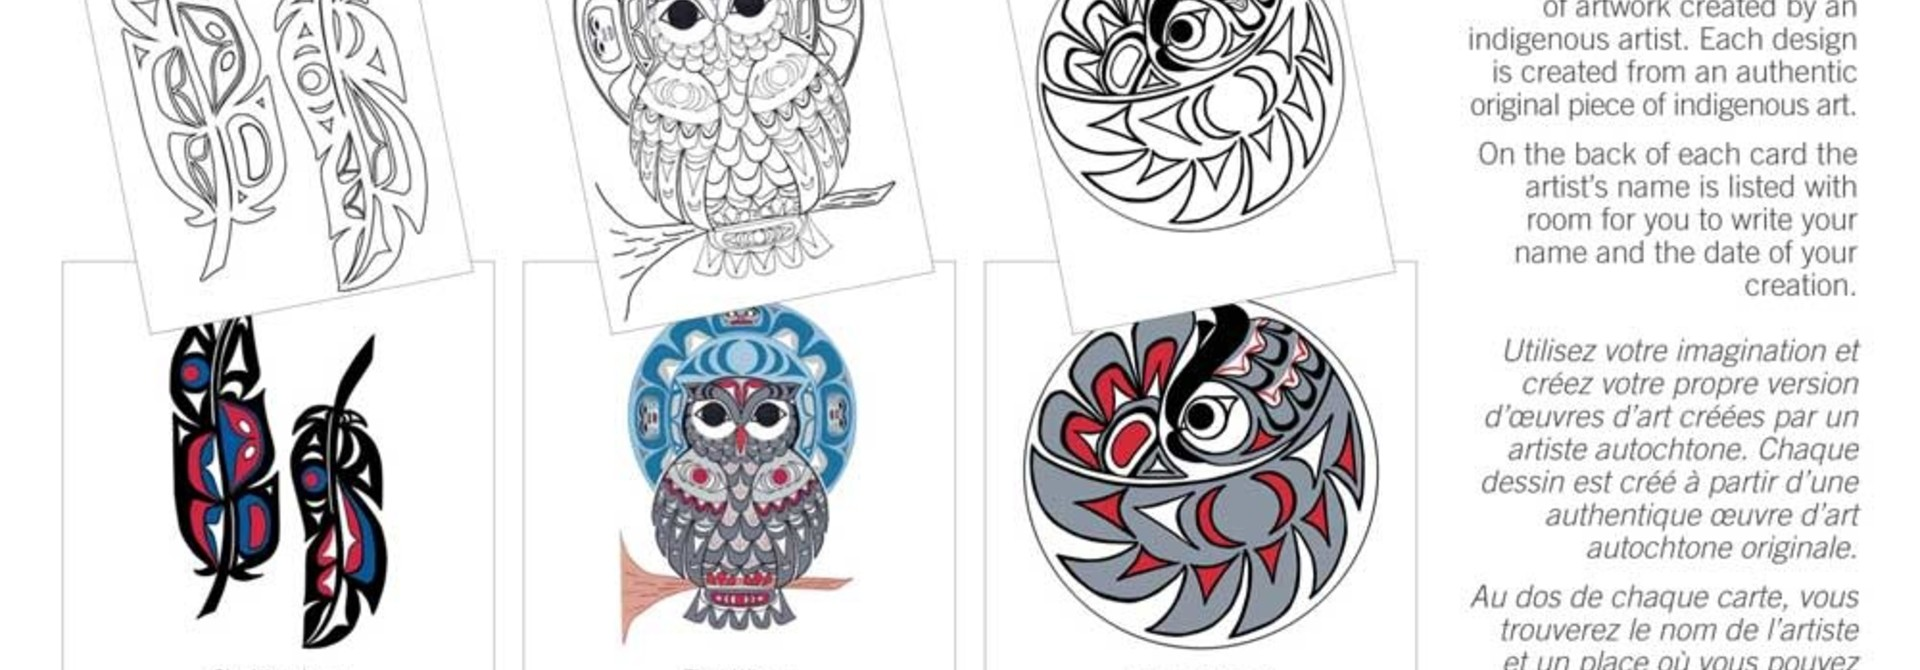 Colouring Note Cards - Feathers by Angela Kimble